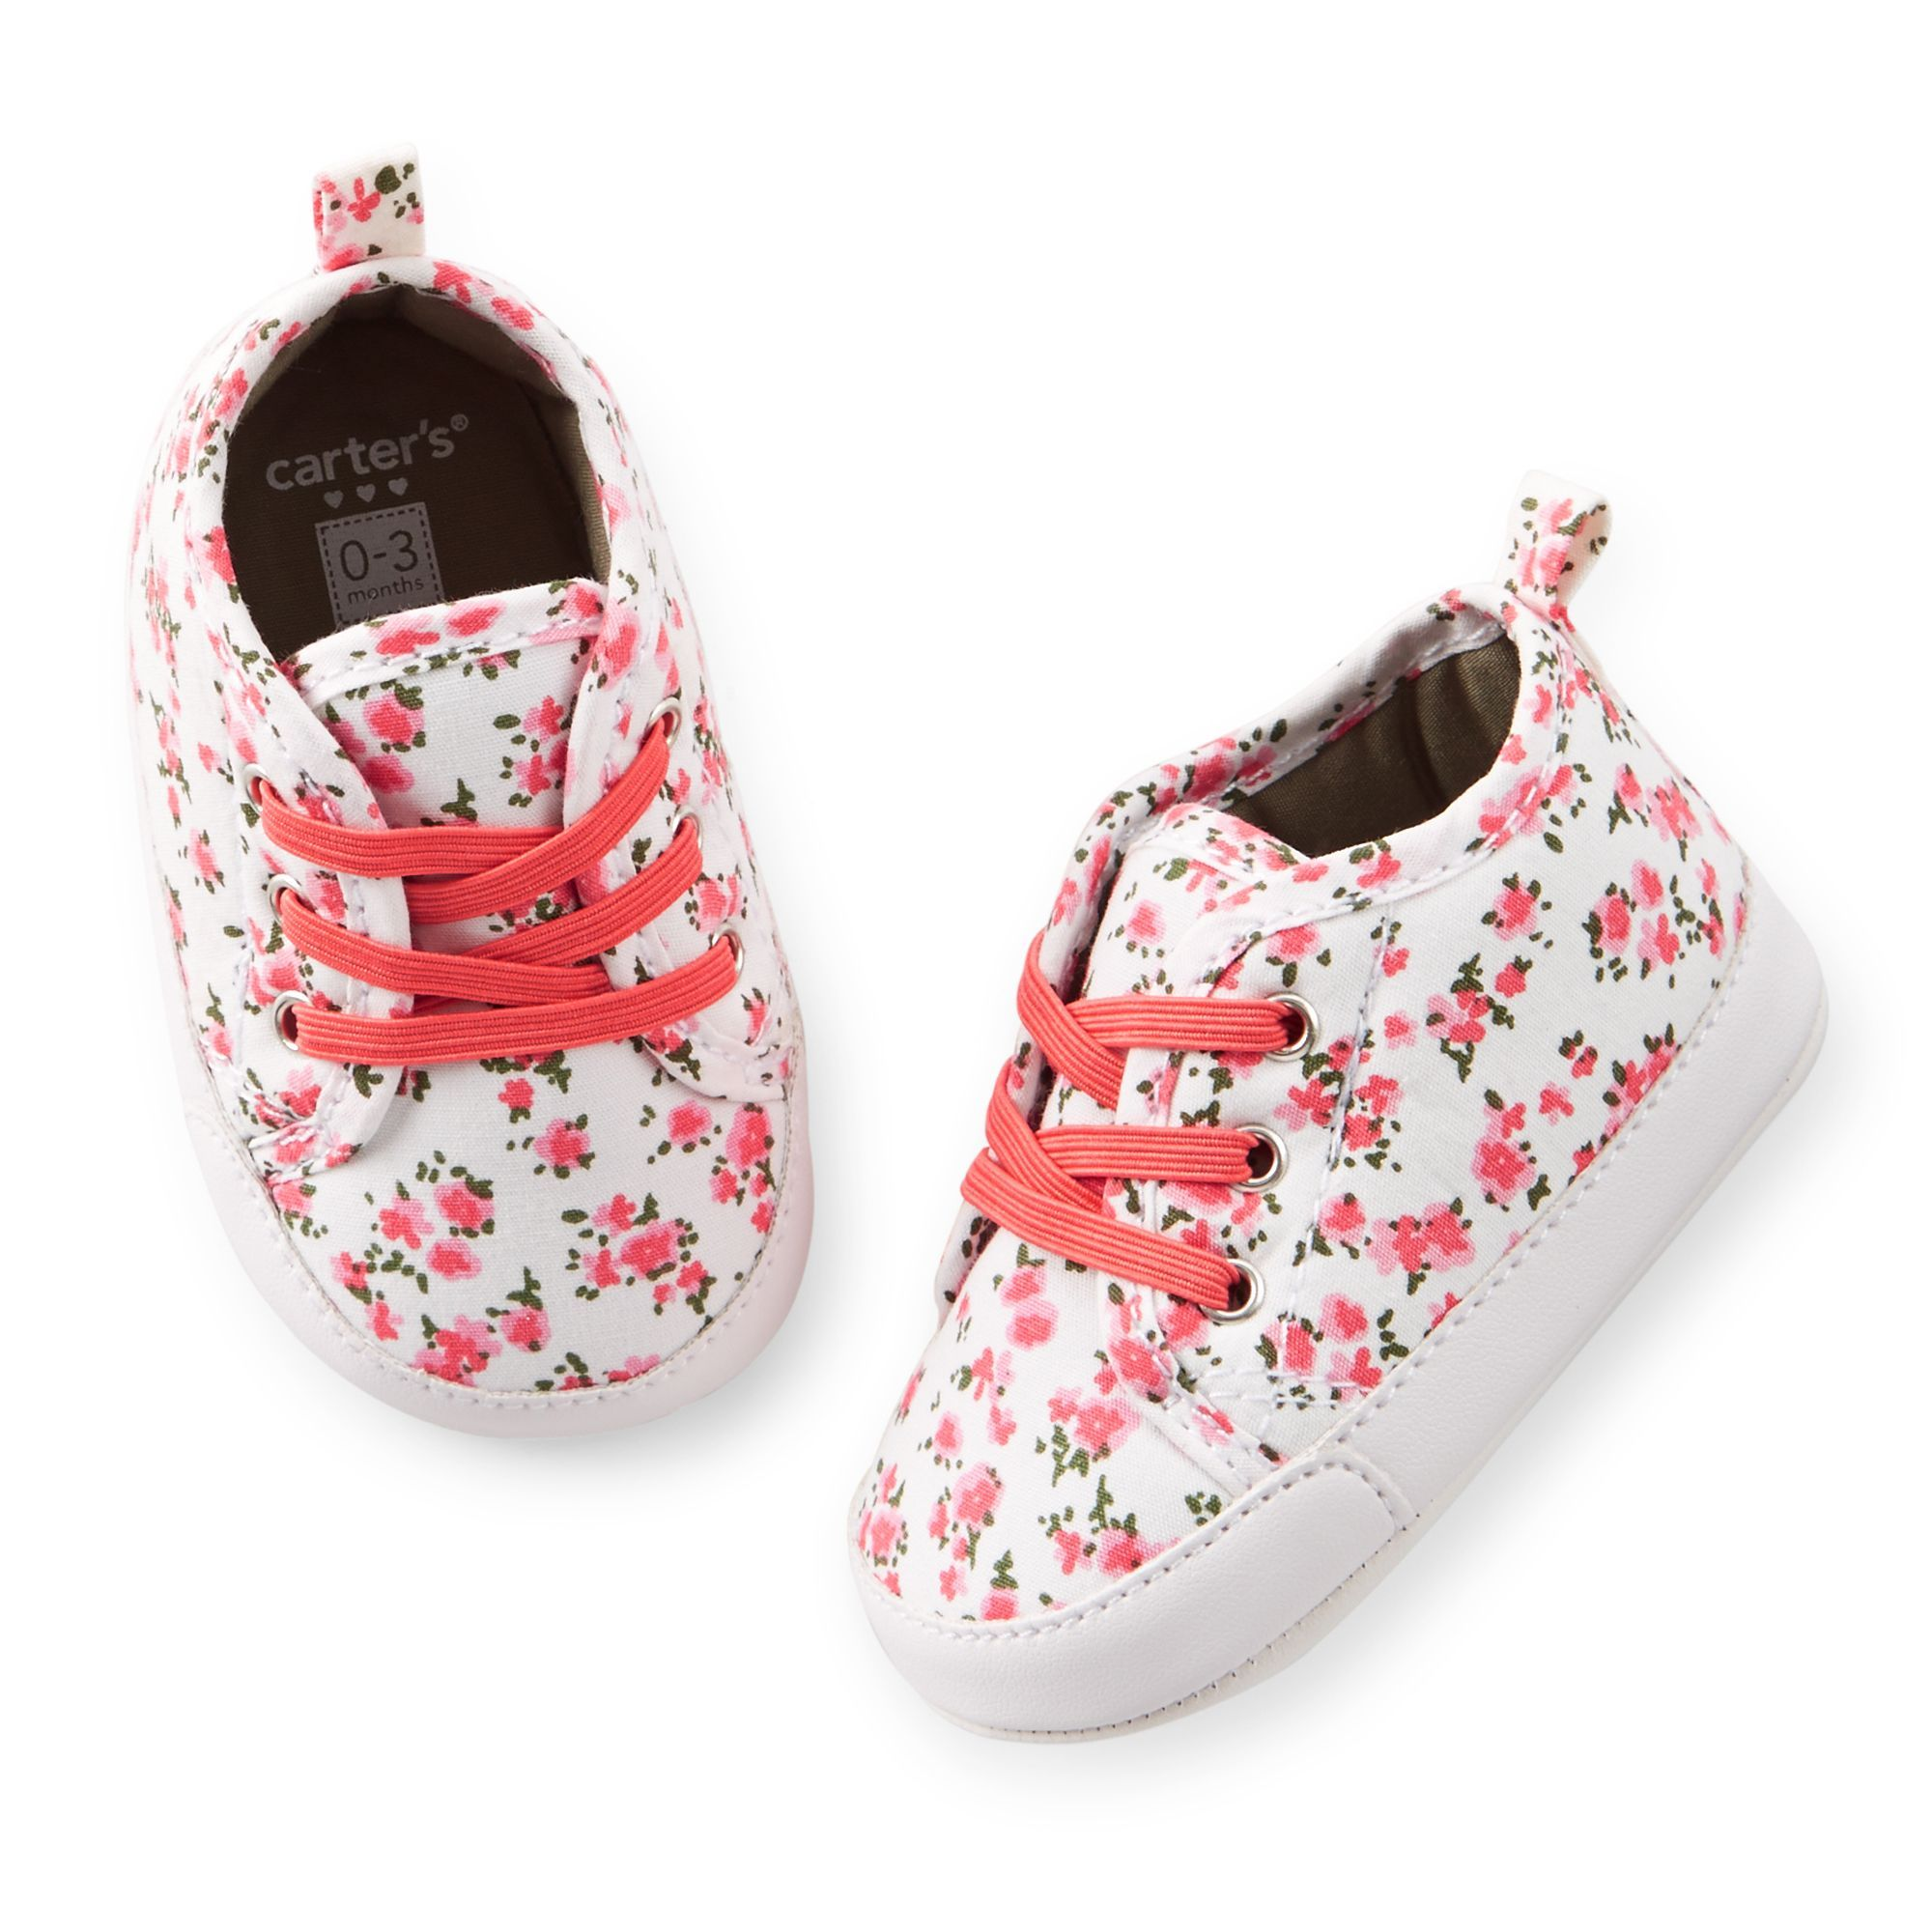 floral sneaker crib shoes Acadia s clothes etc